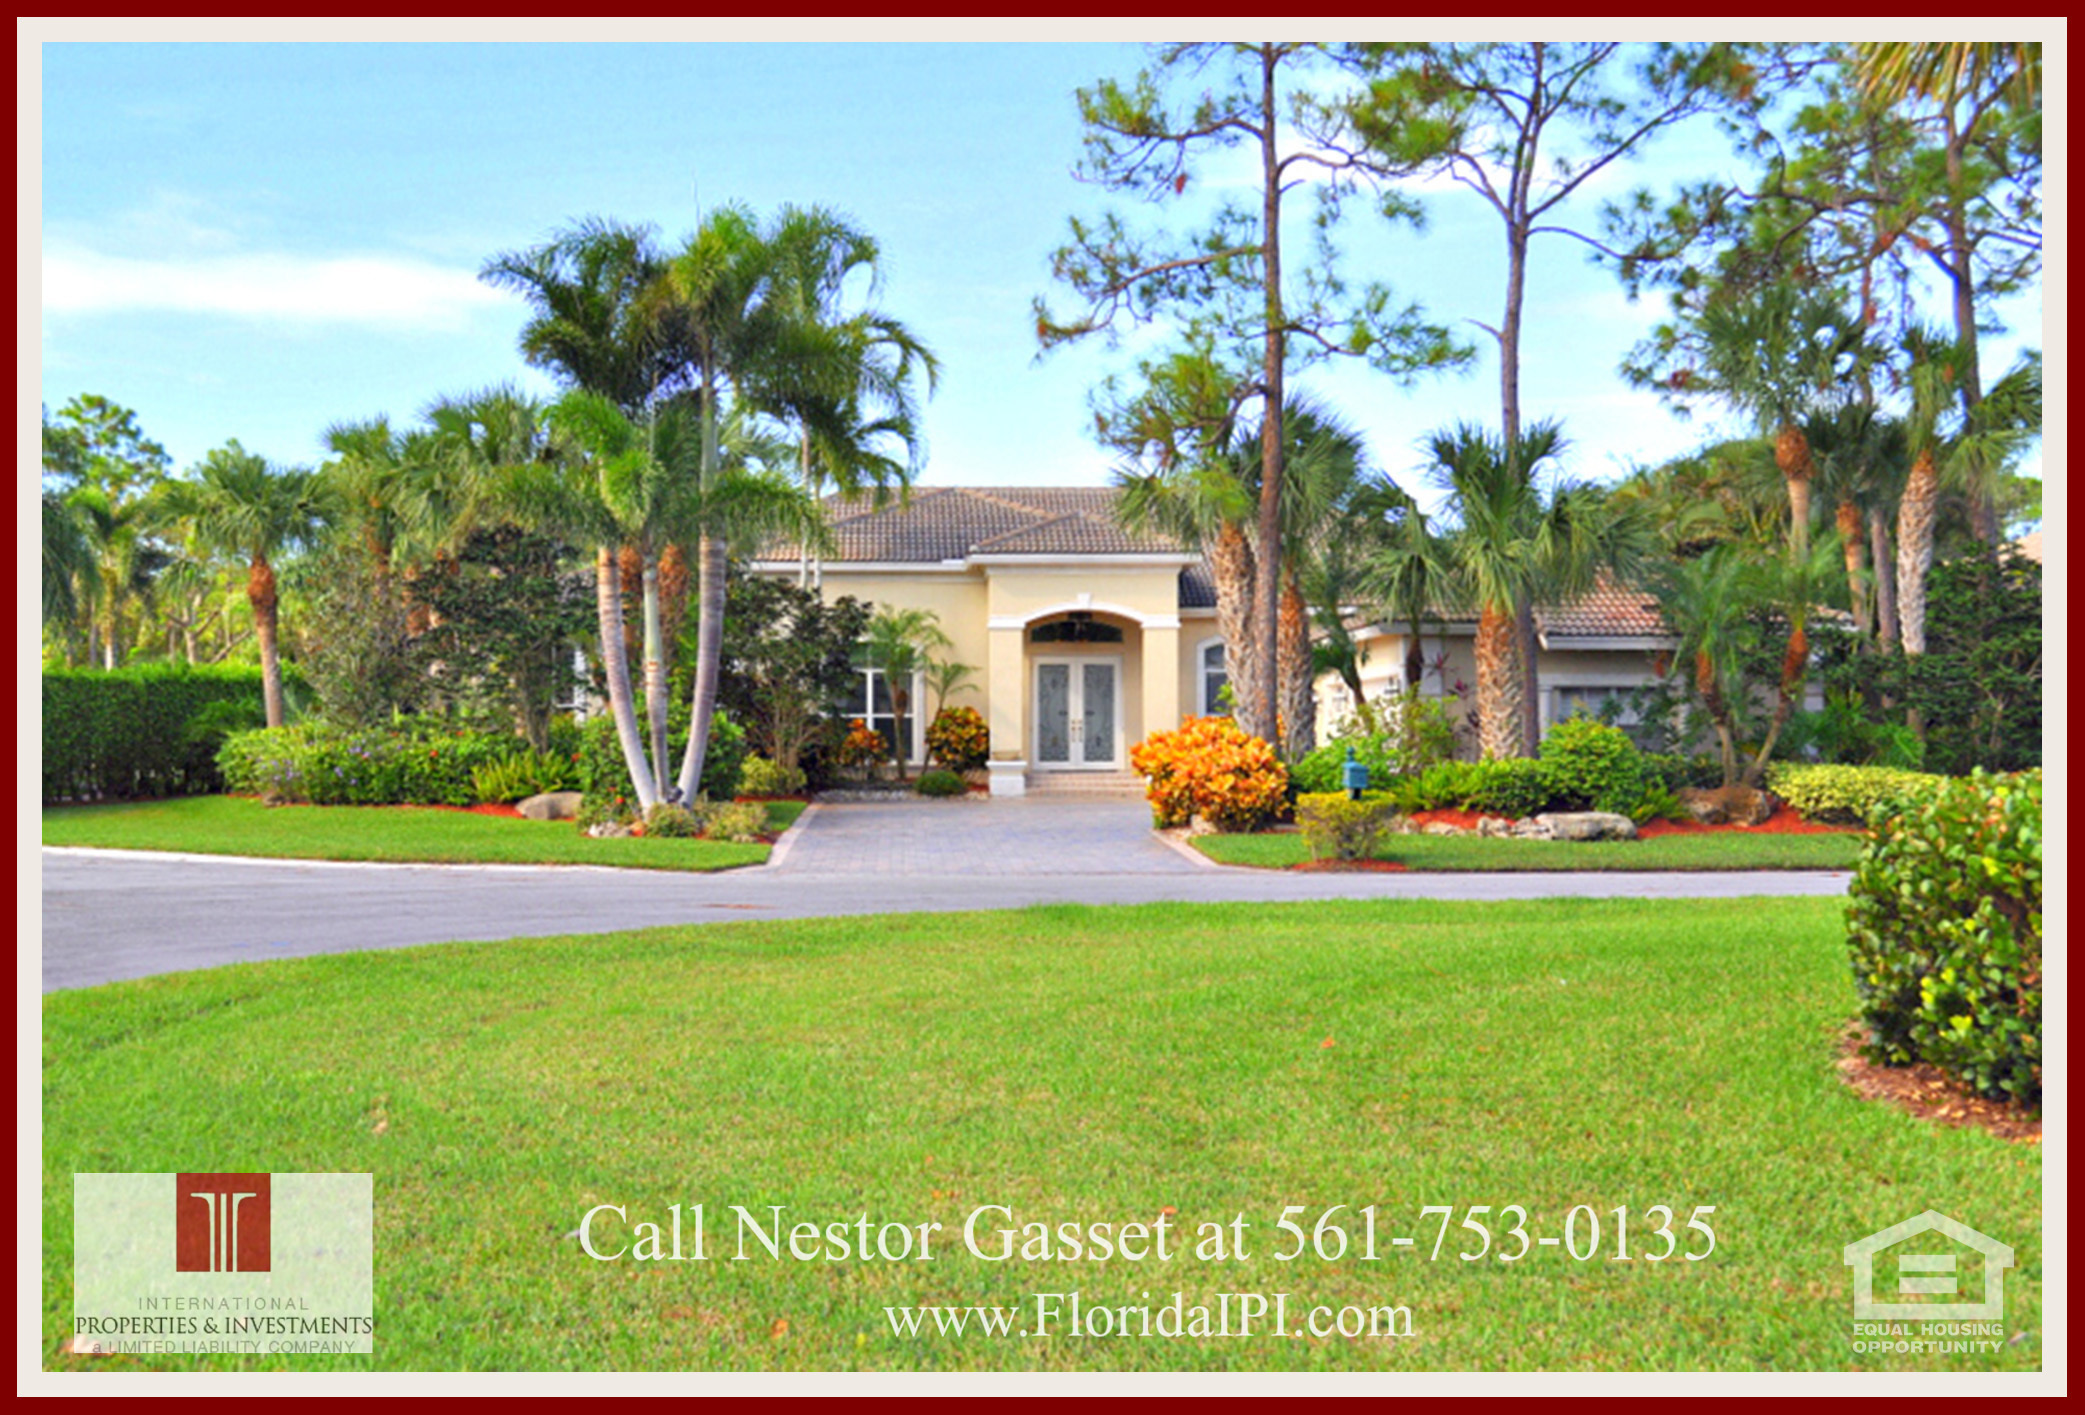 West Palm Beach Fl Golf Course Community Estate Home for Sale  - This beautifully landscaped West Palm Beach FL home for sale has over 3,500 square feet of living space